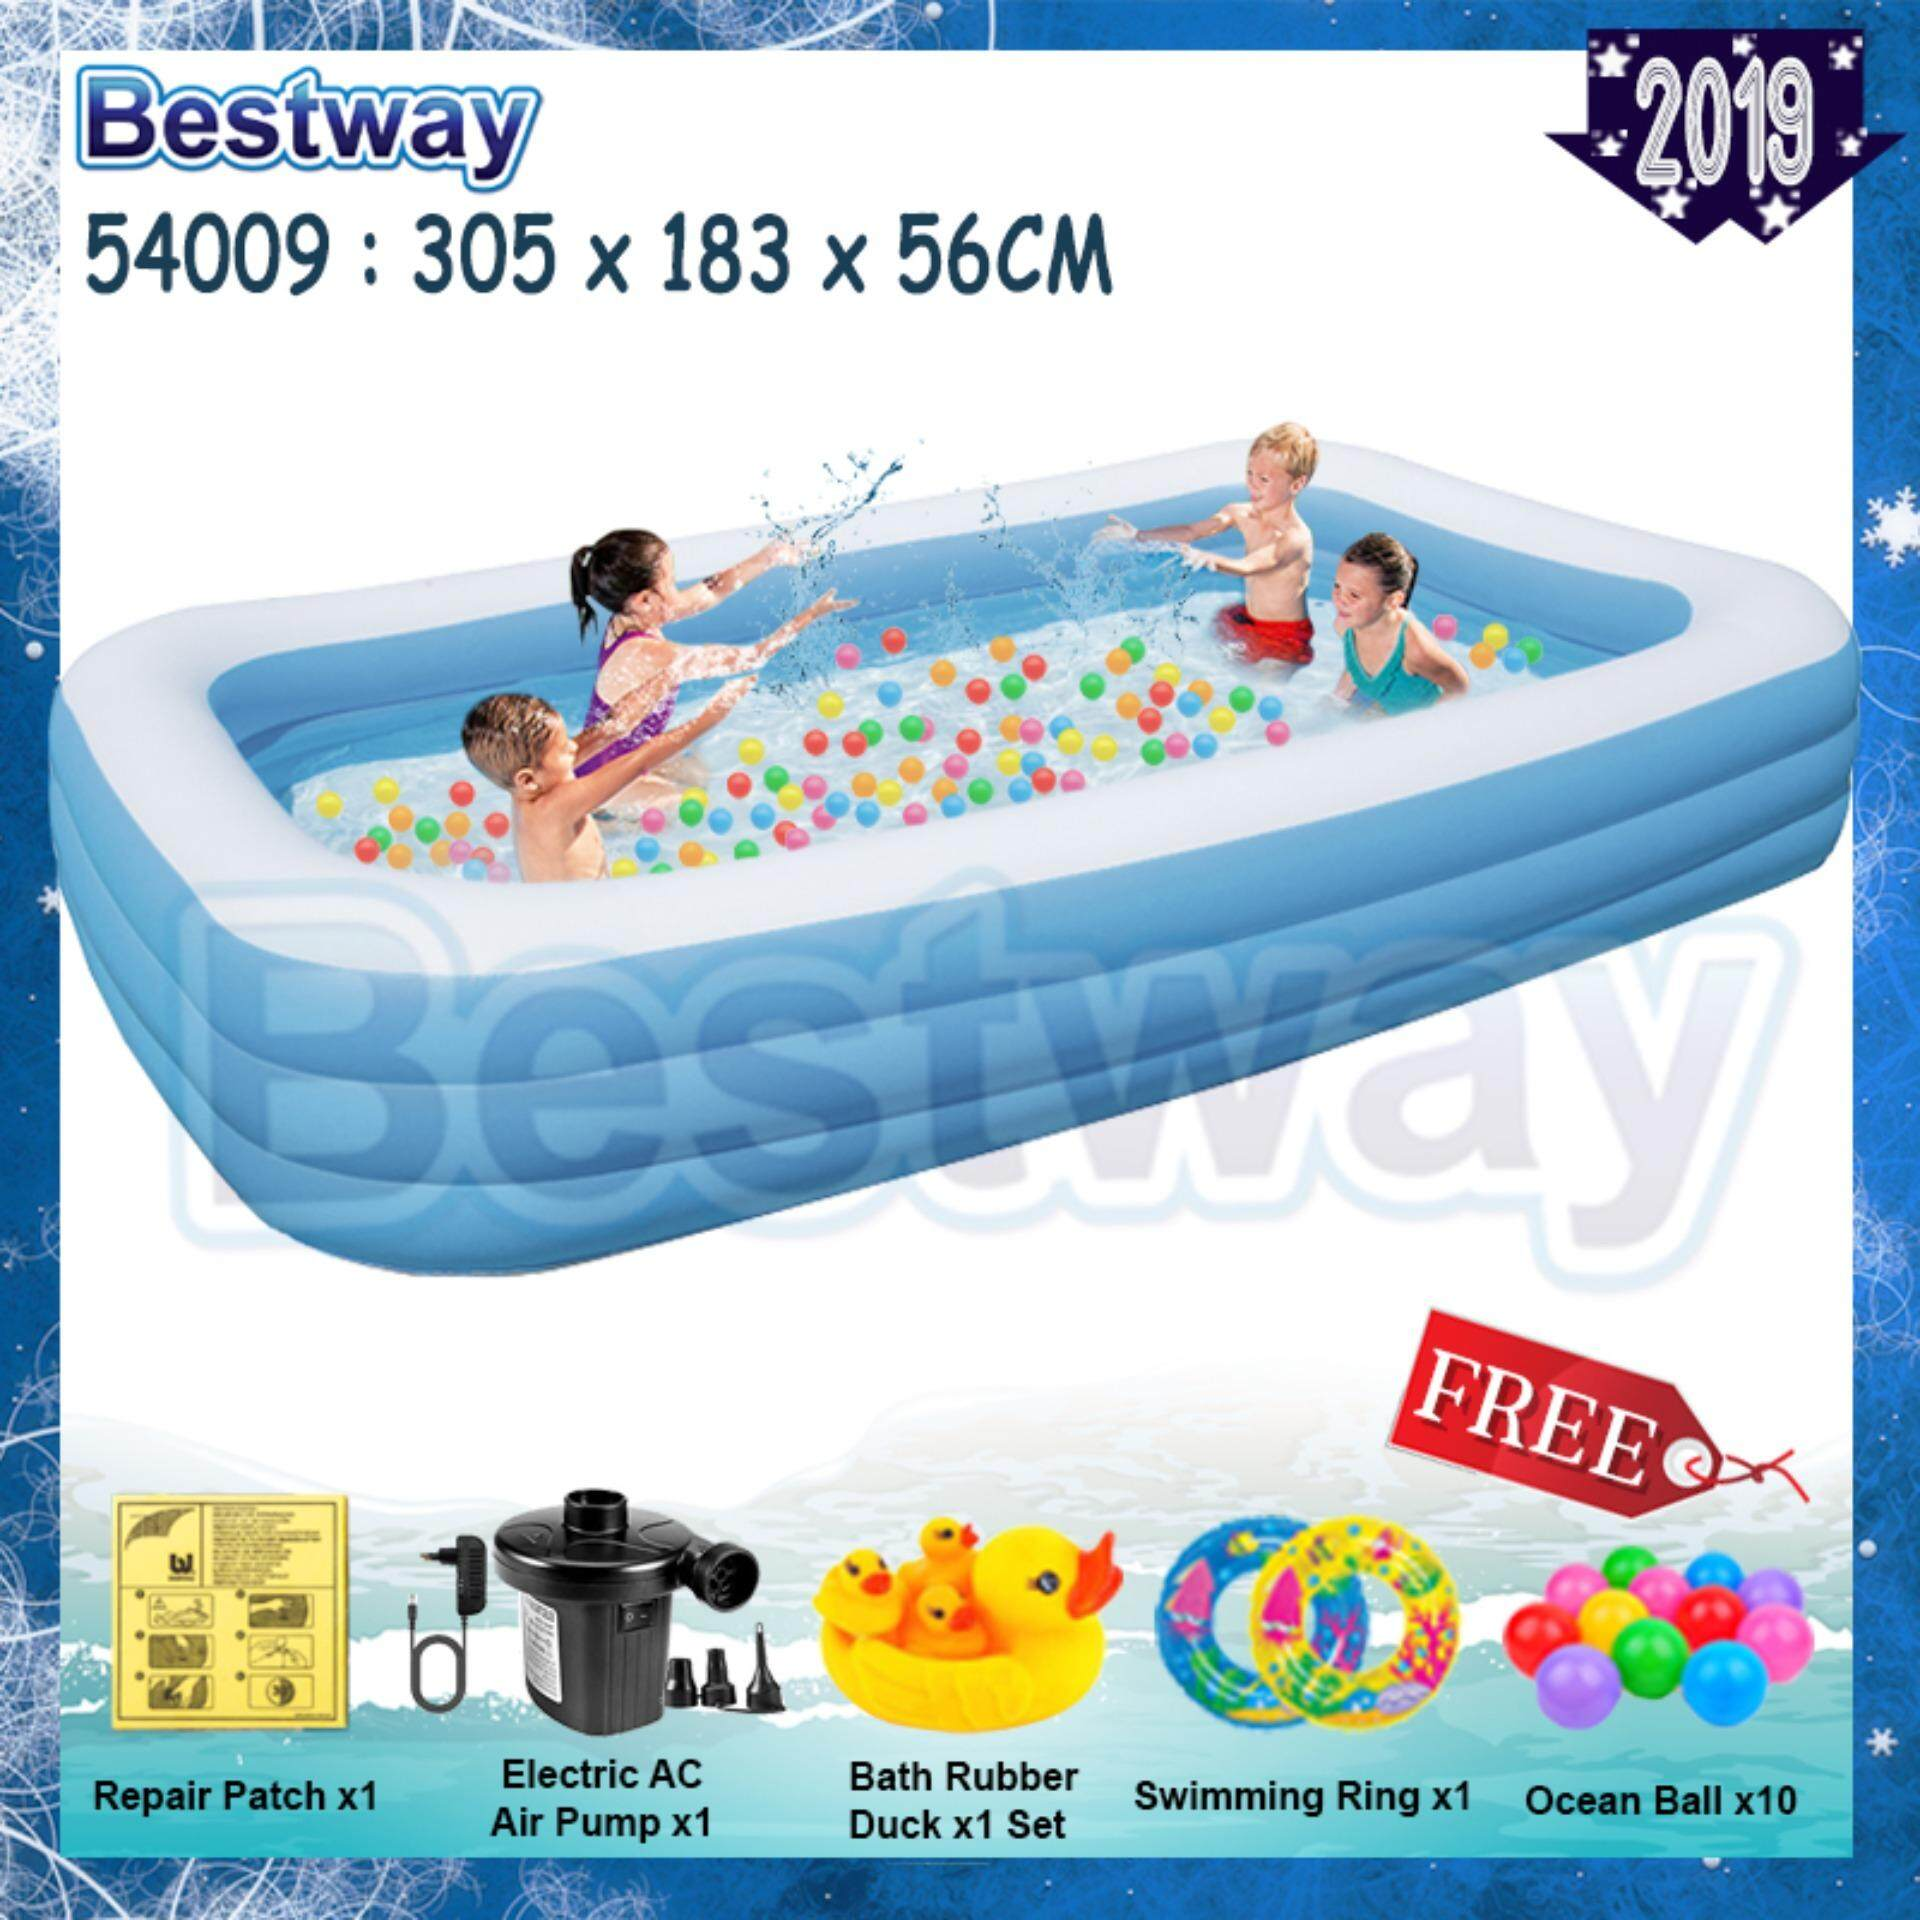 Bestway 3 05 Meter 54009 (305cm x 183cm x 56cm) Extra Large 3 Layers  Inflatable Family Swimming Pools For Kid or Family [NP170] -Premium Toys  for boys